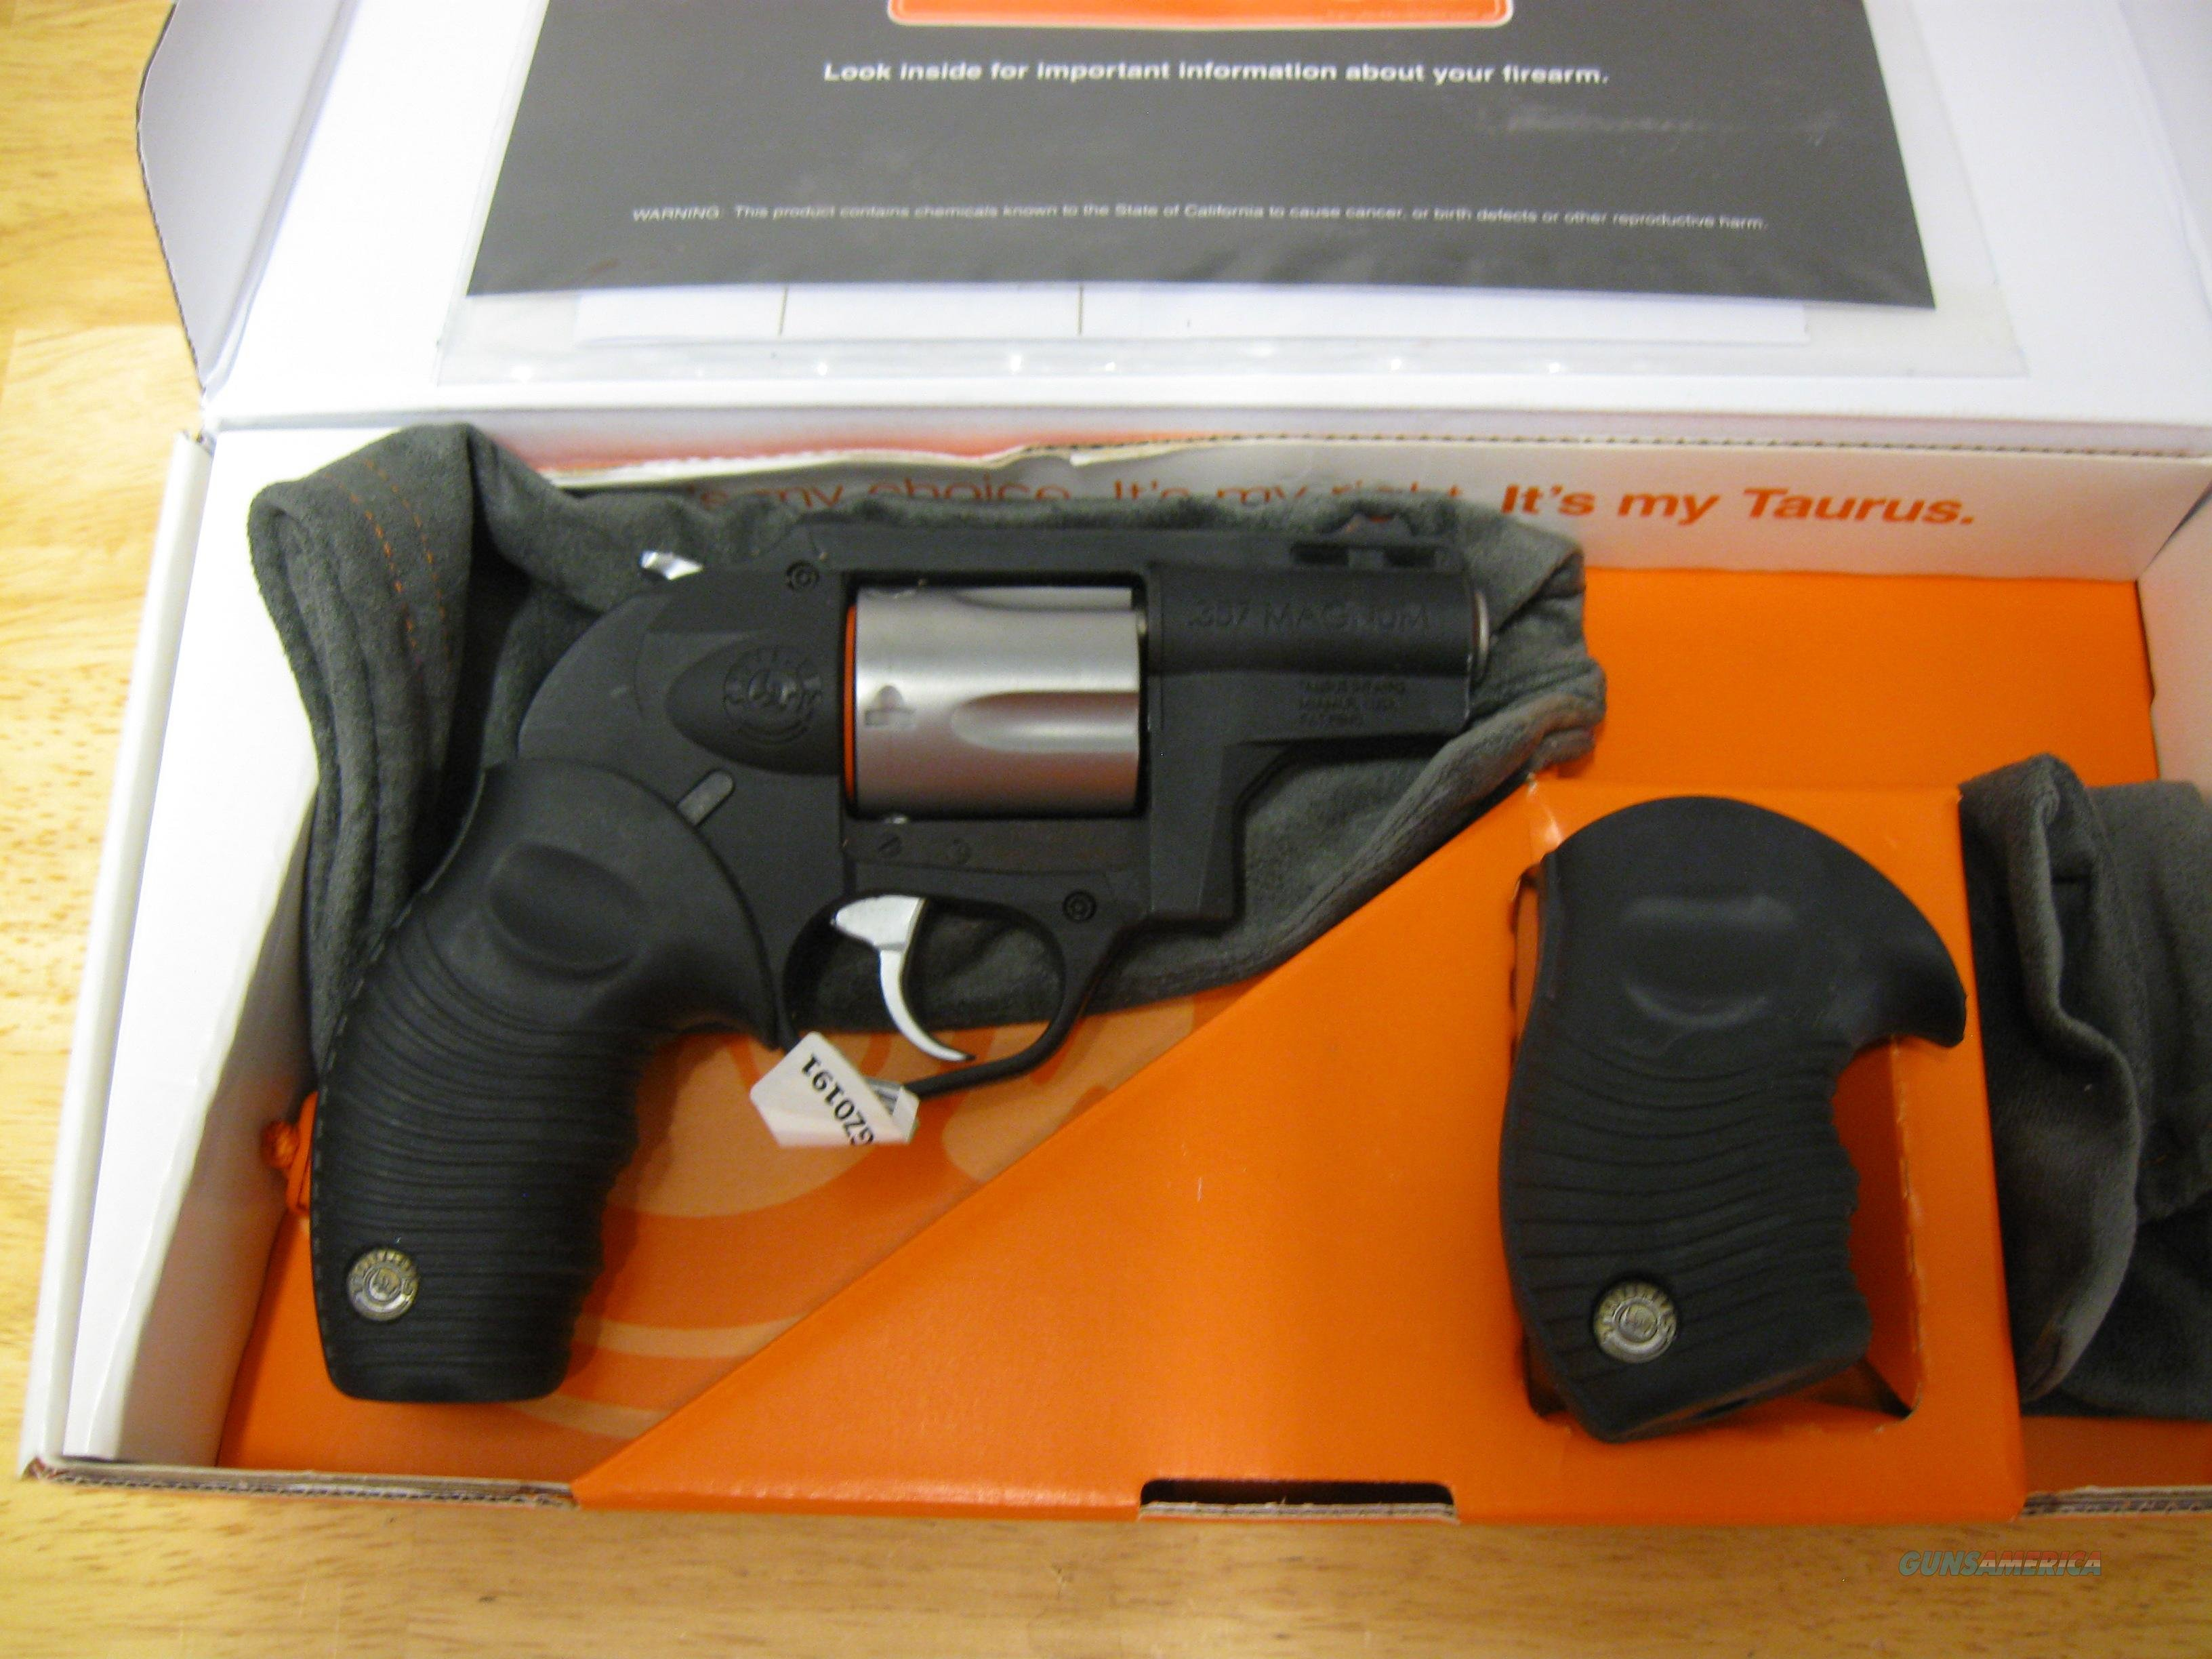 Taurus 605 Protector Polymer, 357 Mag, 2 in, 5 Rd  Guns > Pistols > Taurus Pistols/Revolvers > Revolvers